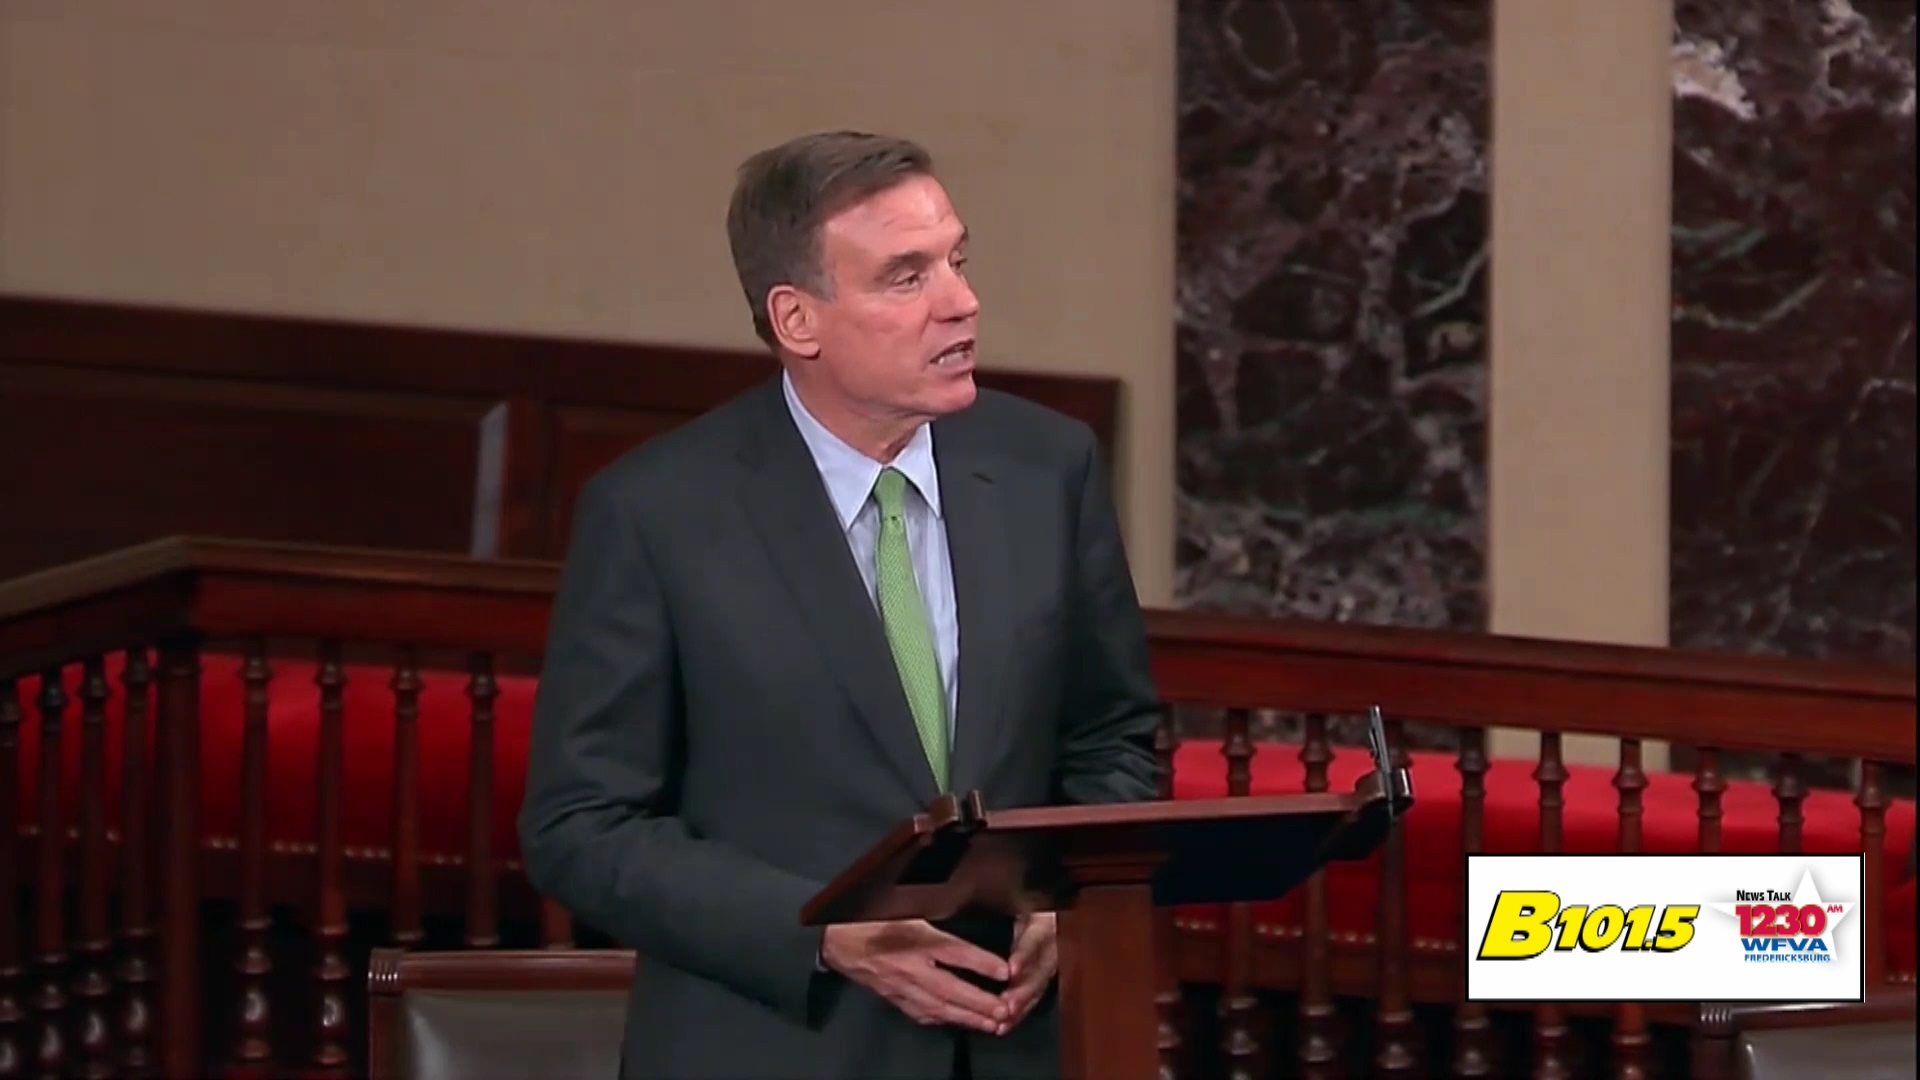 Warner fails in attempt to pass election security legislation on the Senate floor